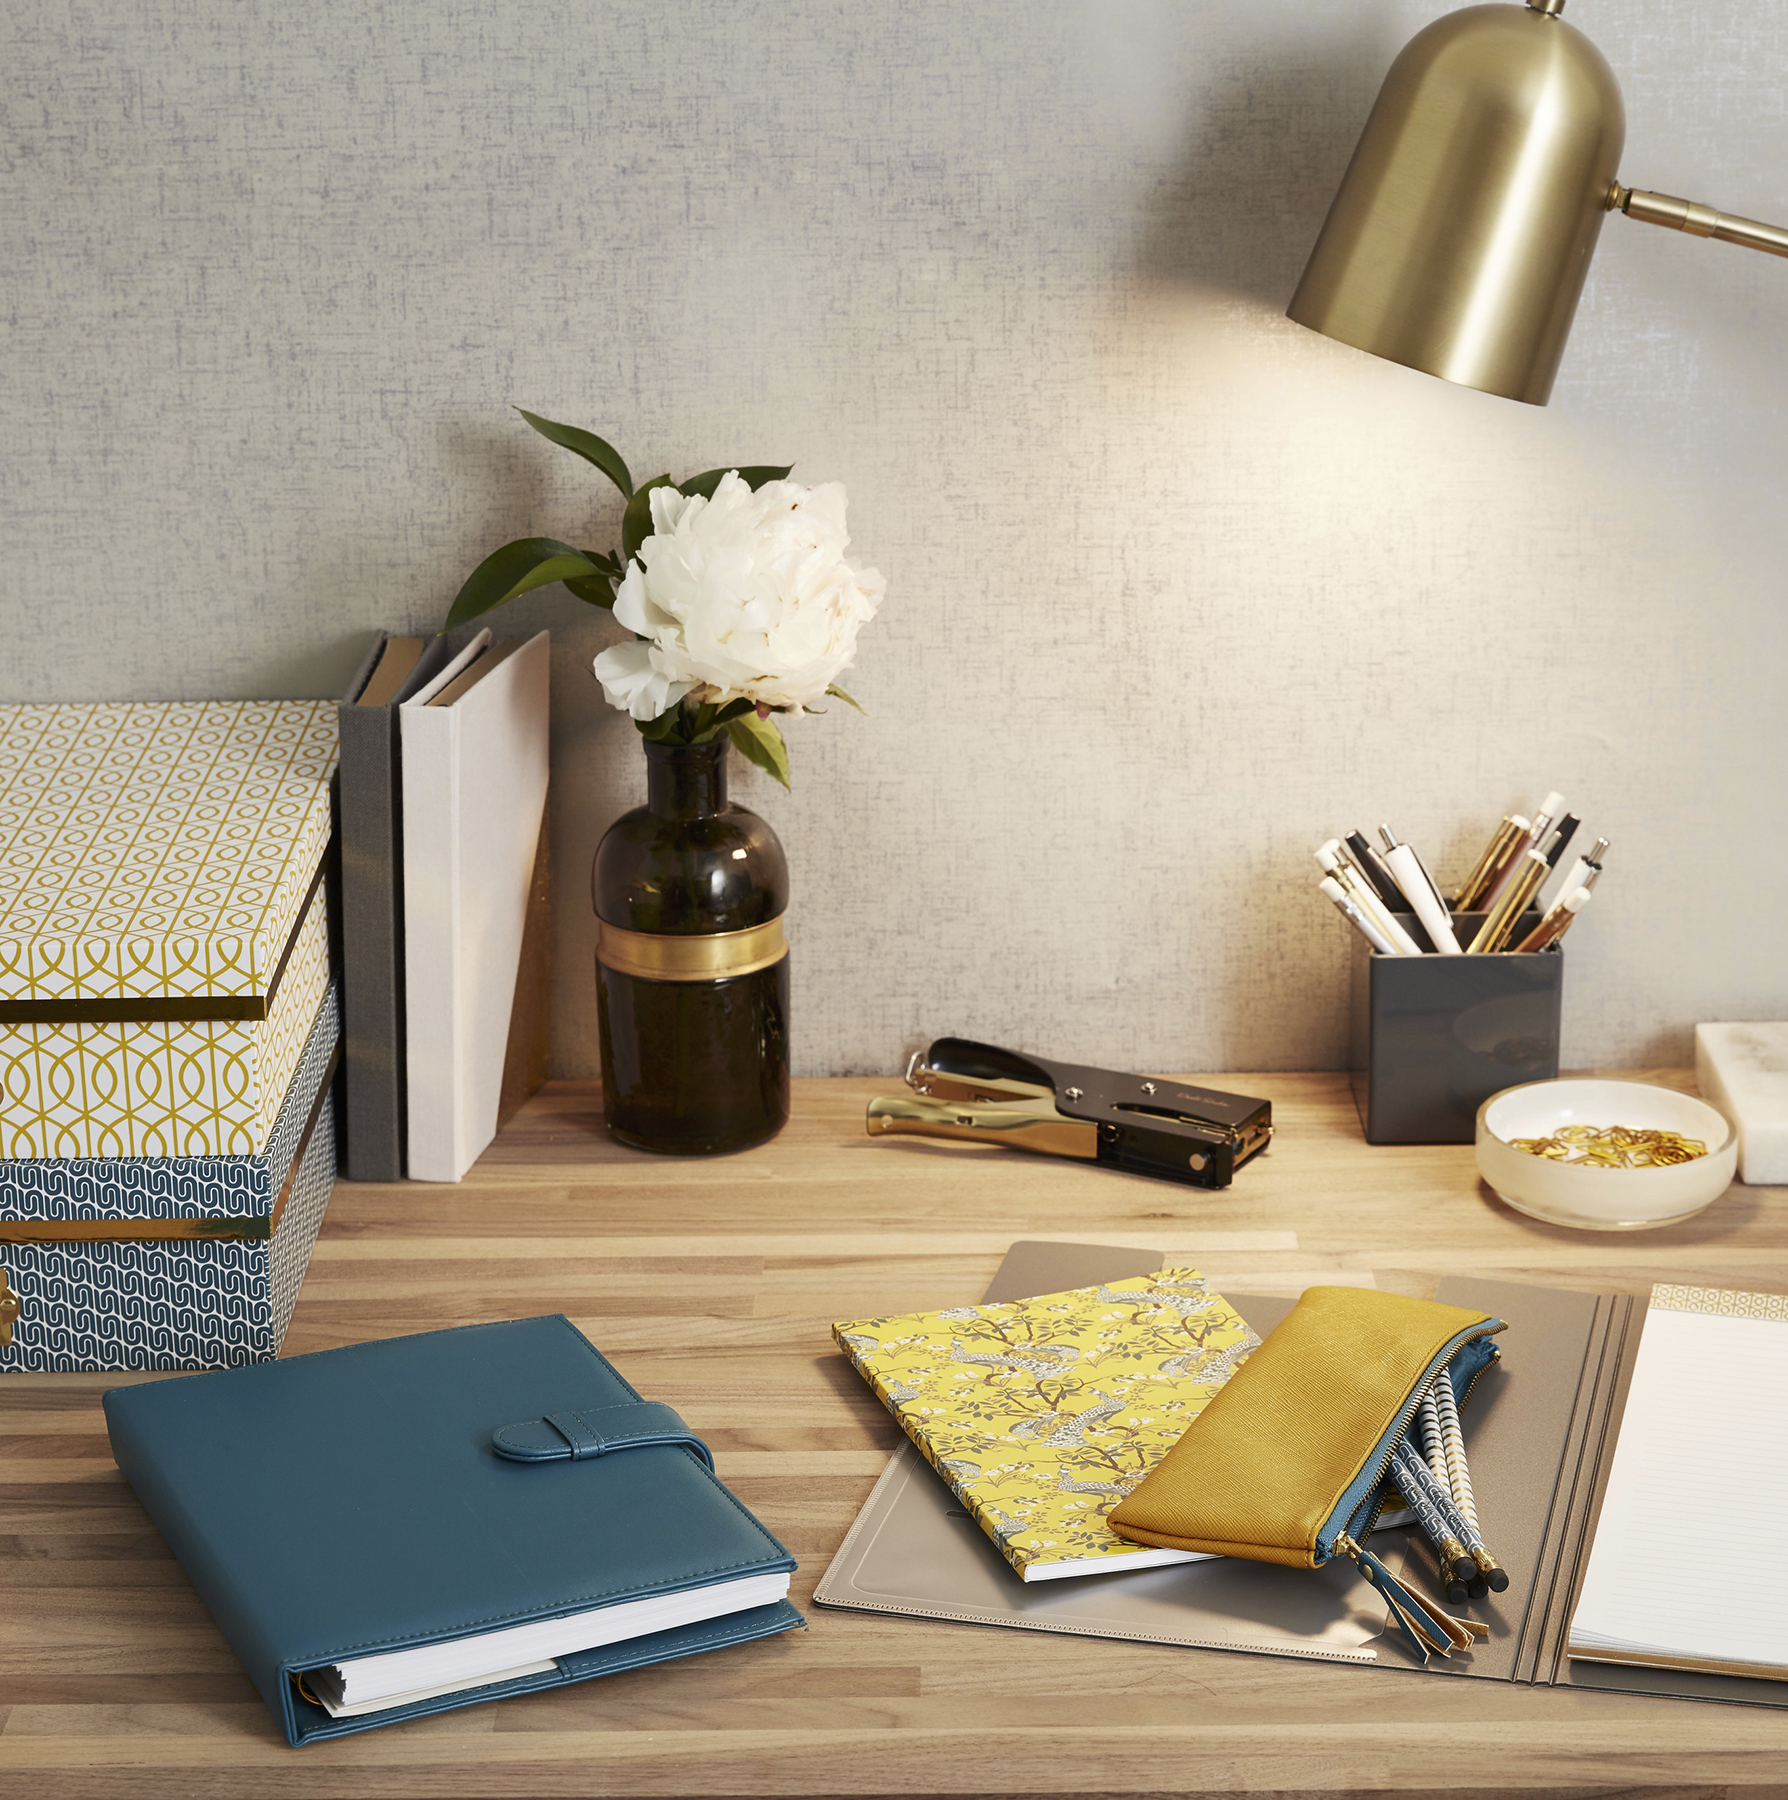 Dwell collection for Staples